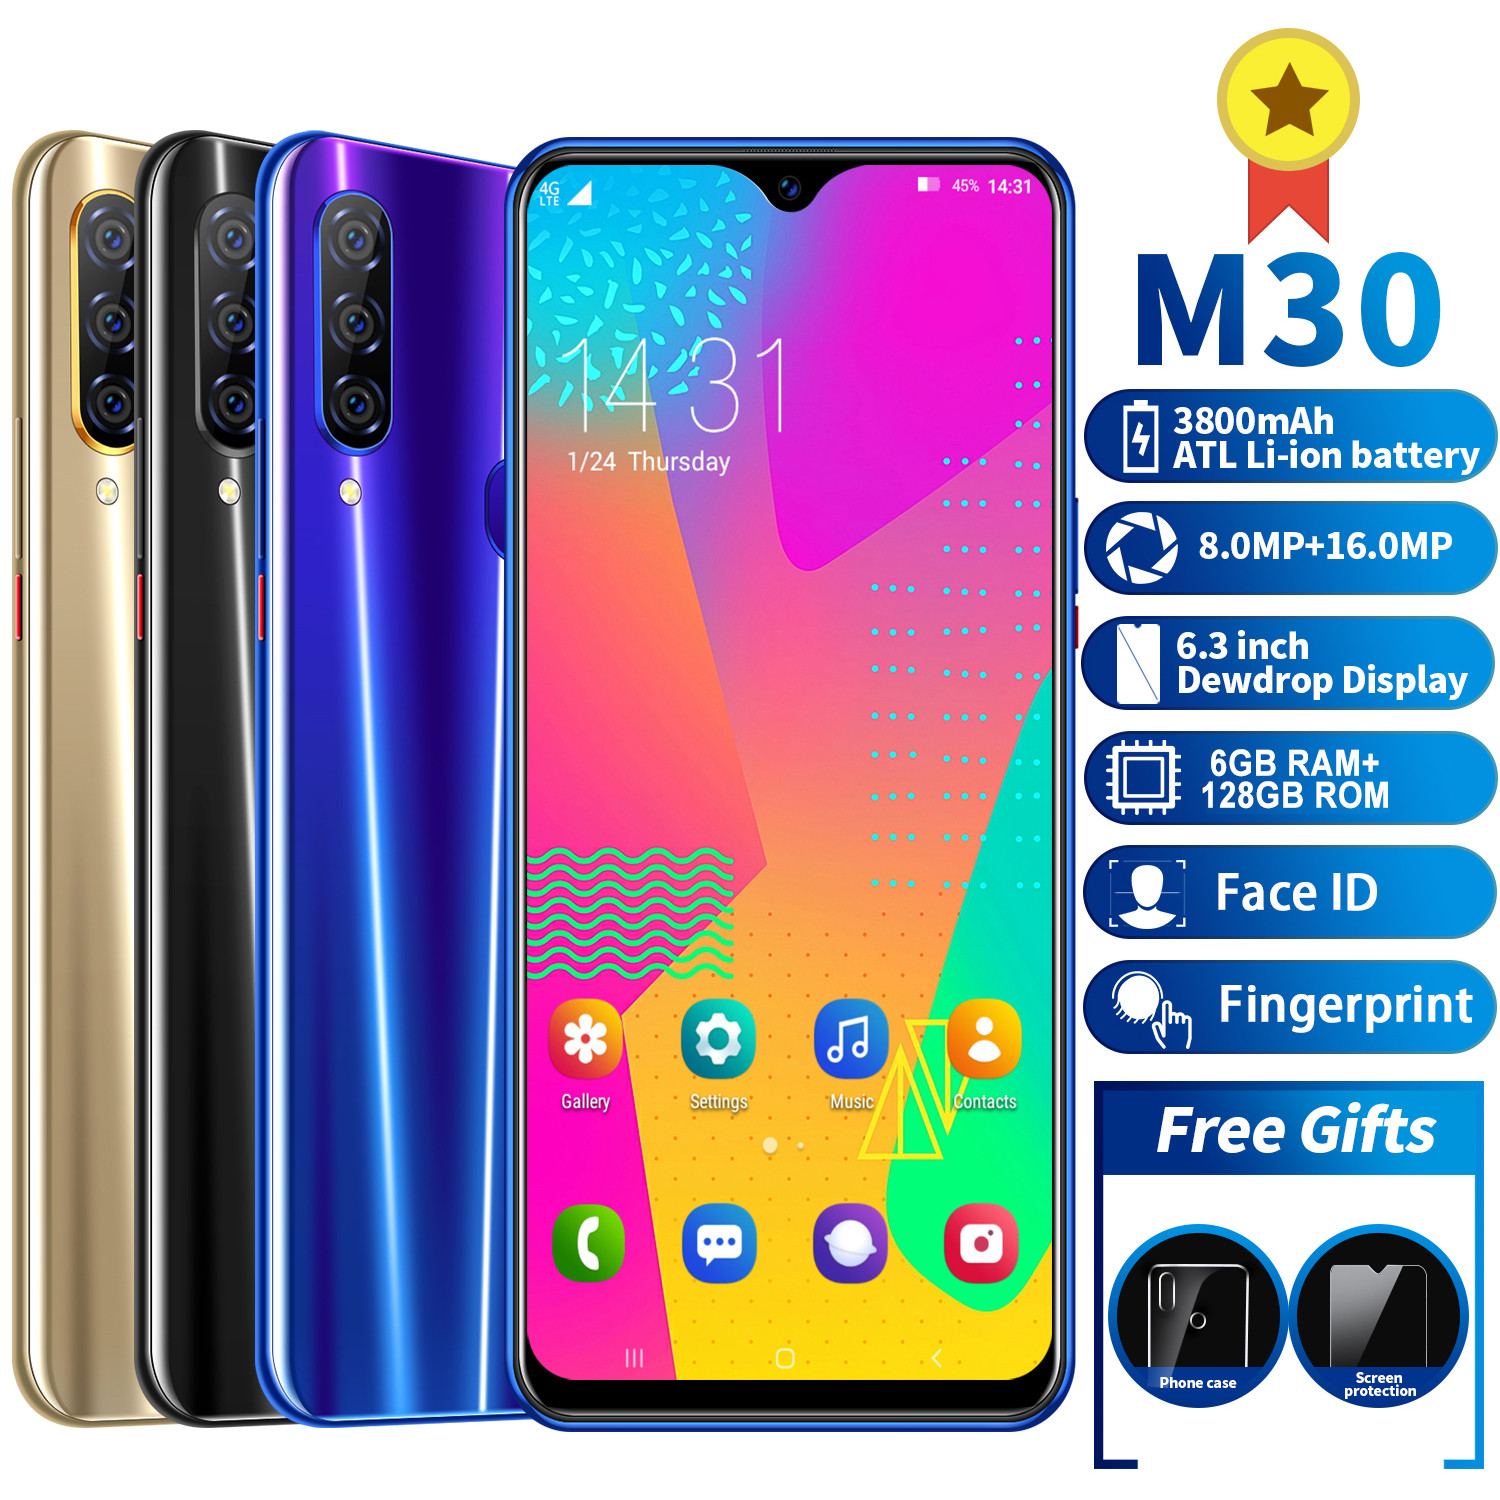 Cell Phones M30 Smartphone MTK6595 Quad Core Mobile Phone 4G LTE Phone 6GB+128GB Camera 8.0MP+16MP. 6.3